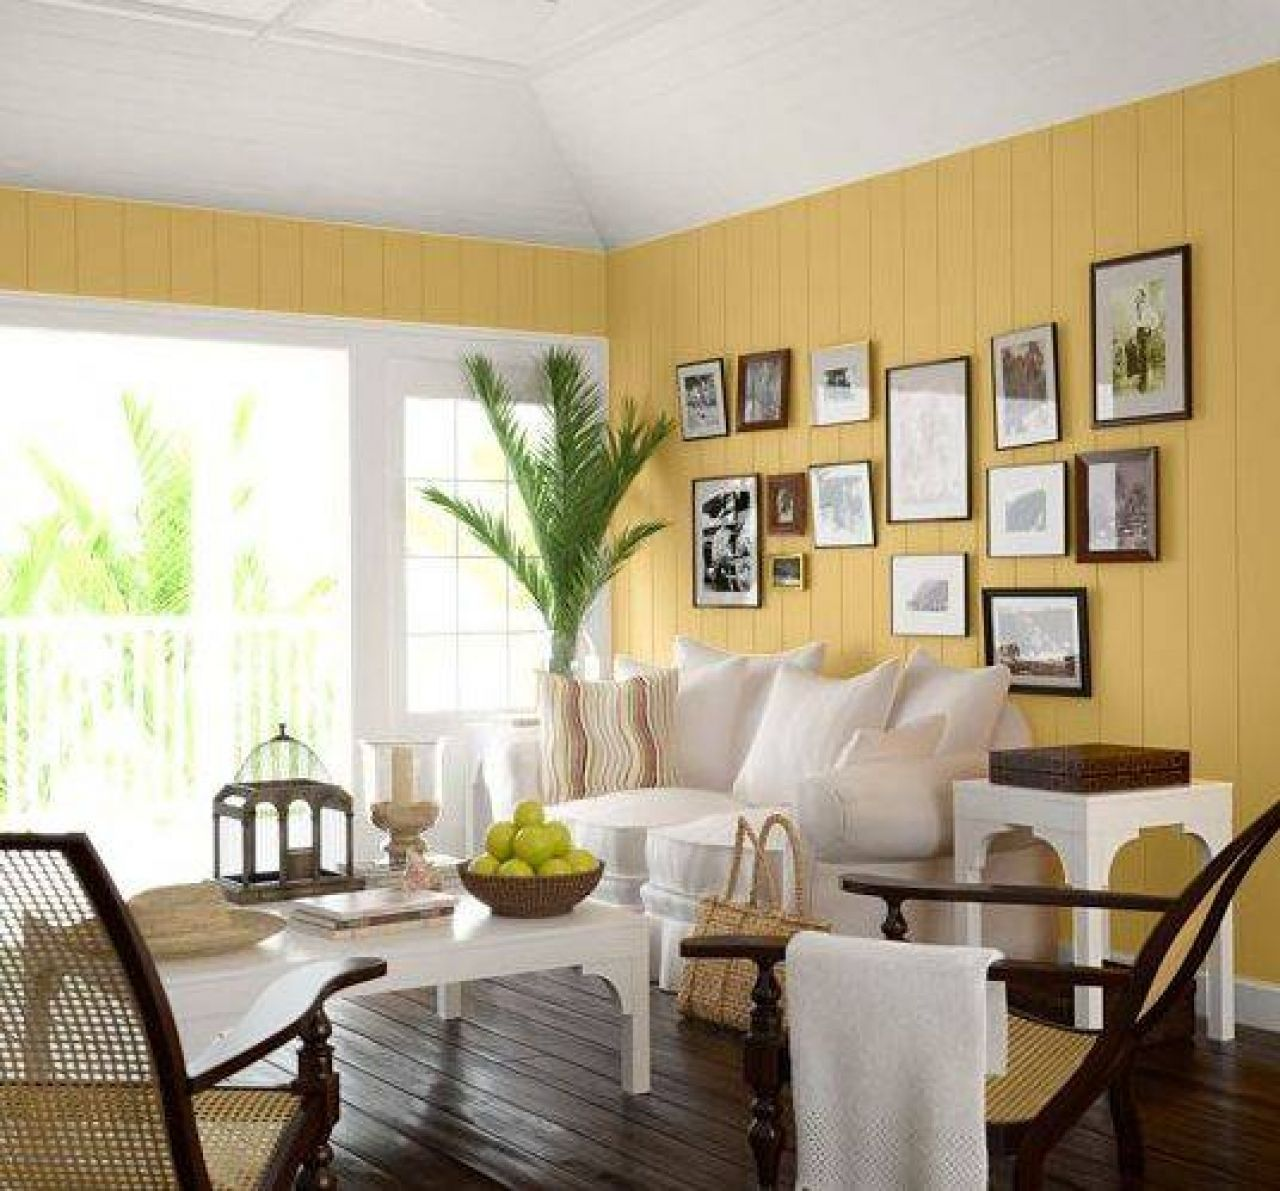 High Quality Living Room:Breathtaking Yellow Wall Colors Living Room With White Leather  Sofa And Square White Coffee Table On Dark Wooden Floor Also Relaxing  Rattan ...